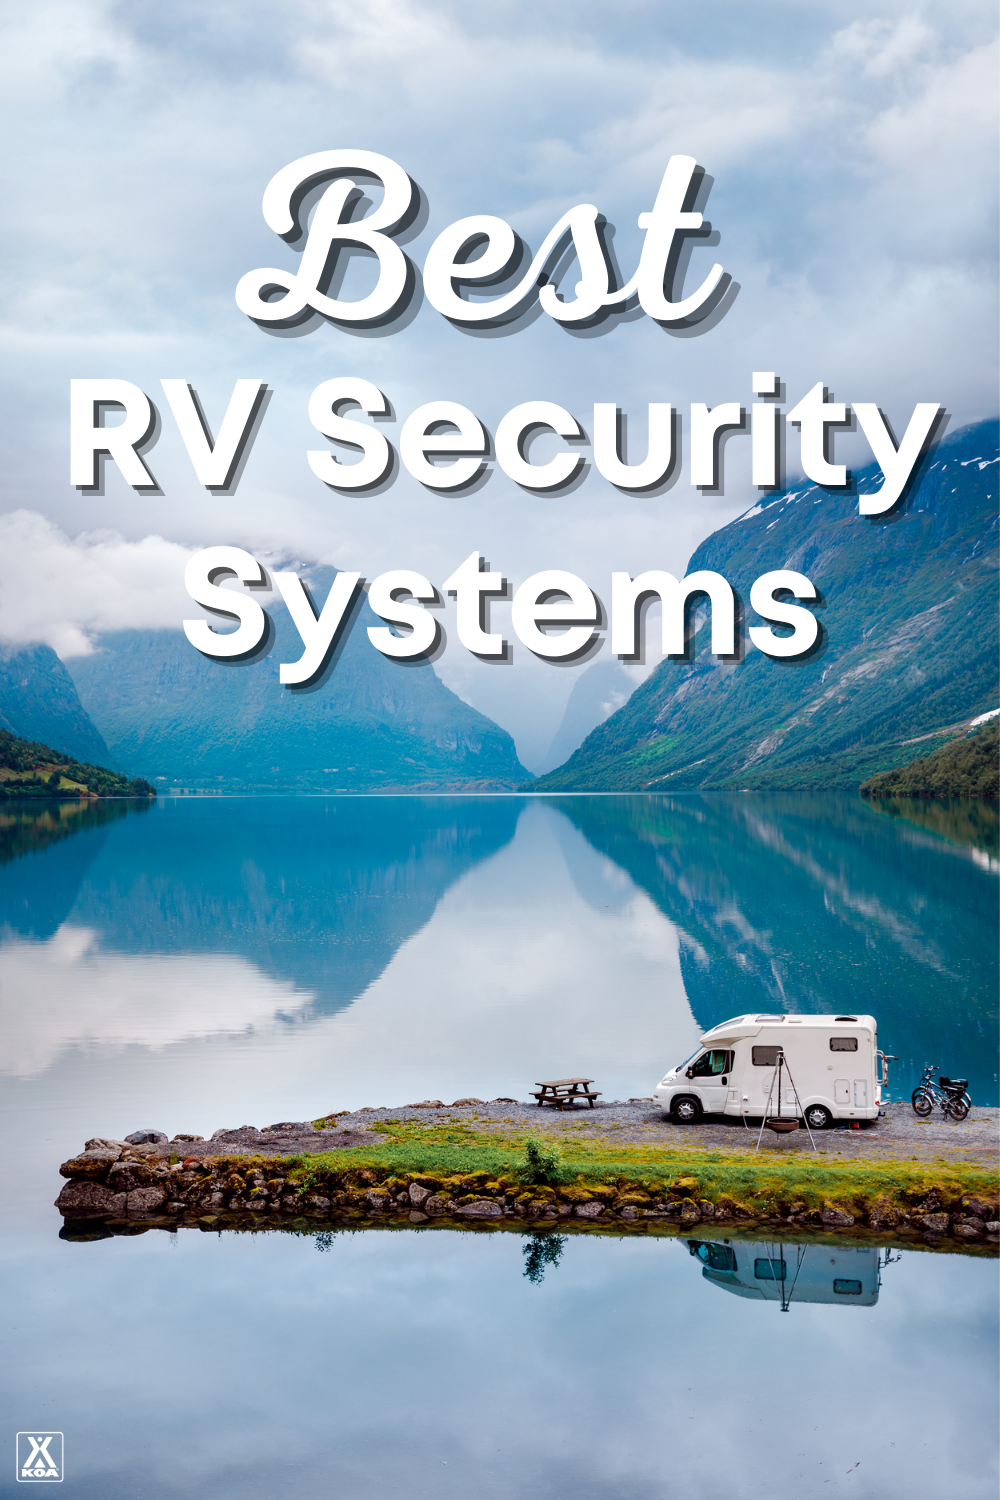 While it might not be top of mind when getting outdoors, security is something you should consider for your RV. Here are seven best-selling security systems recommended by RVers and security experts.